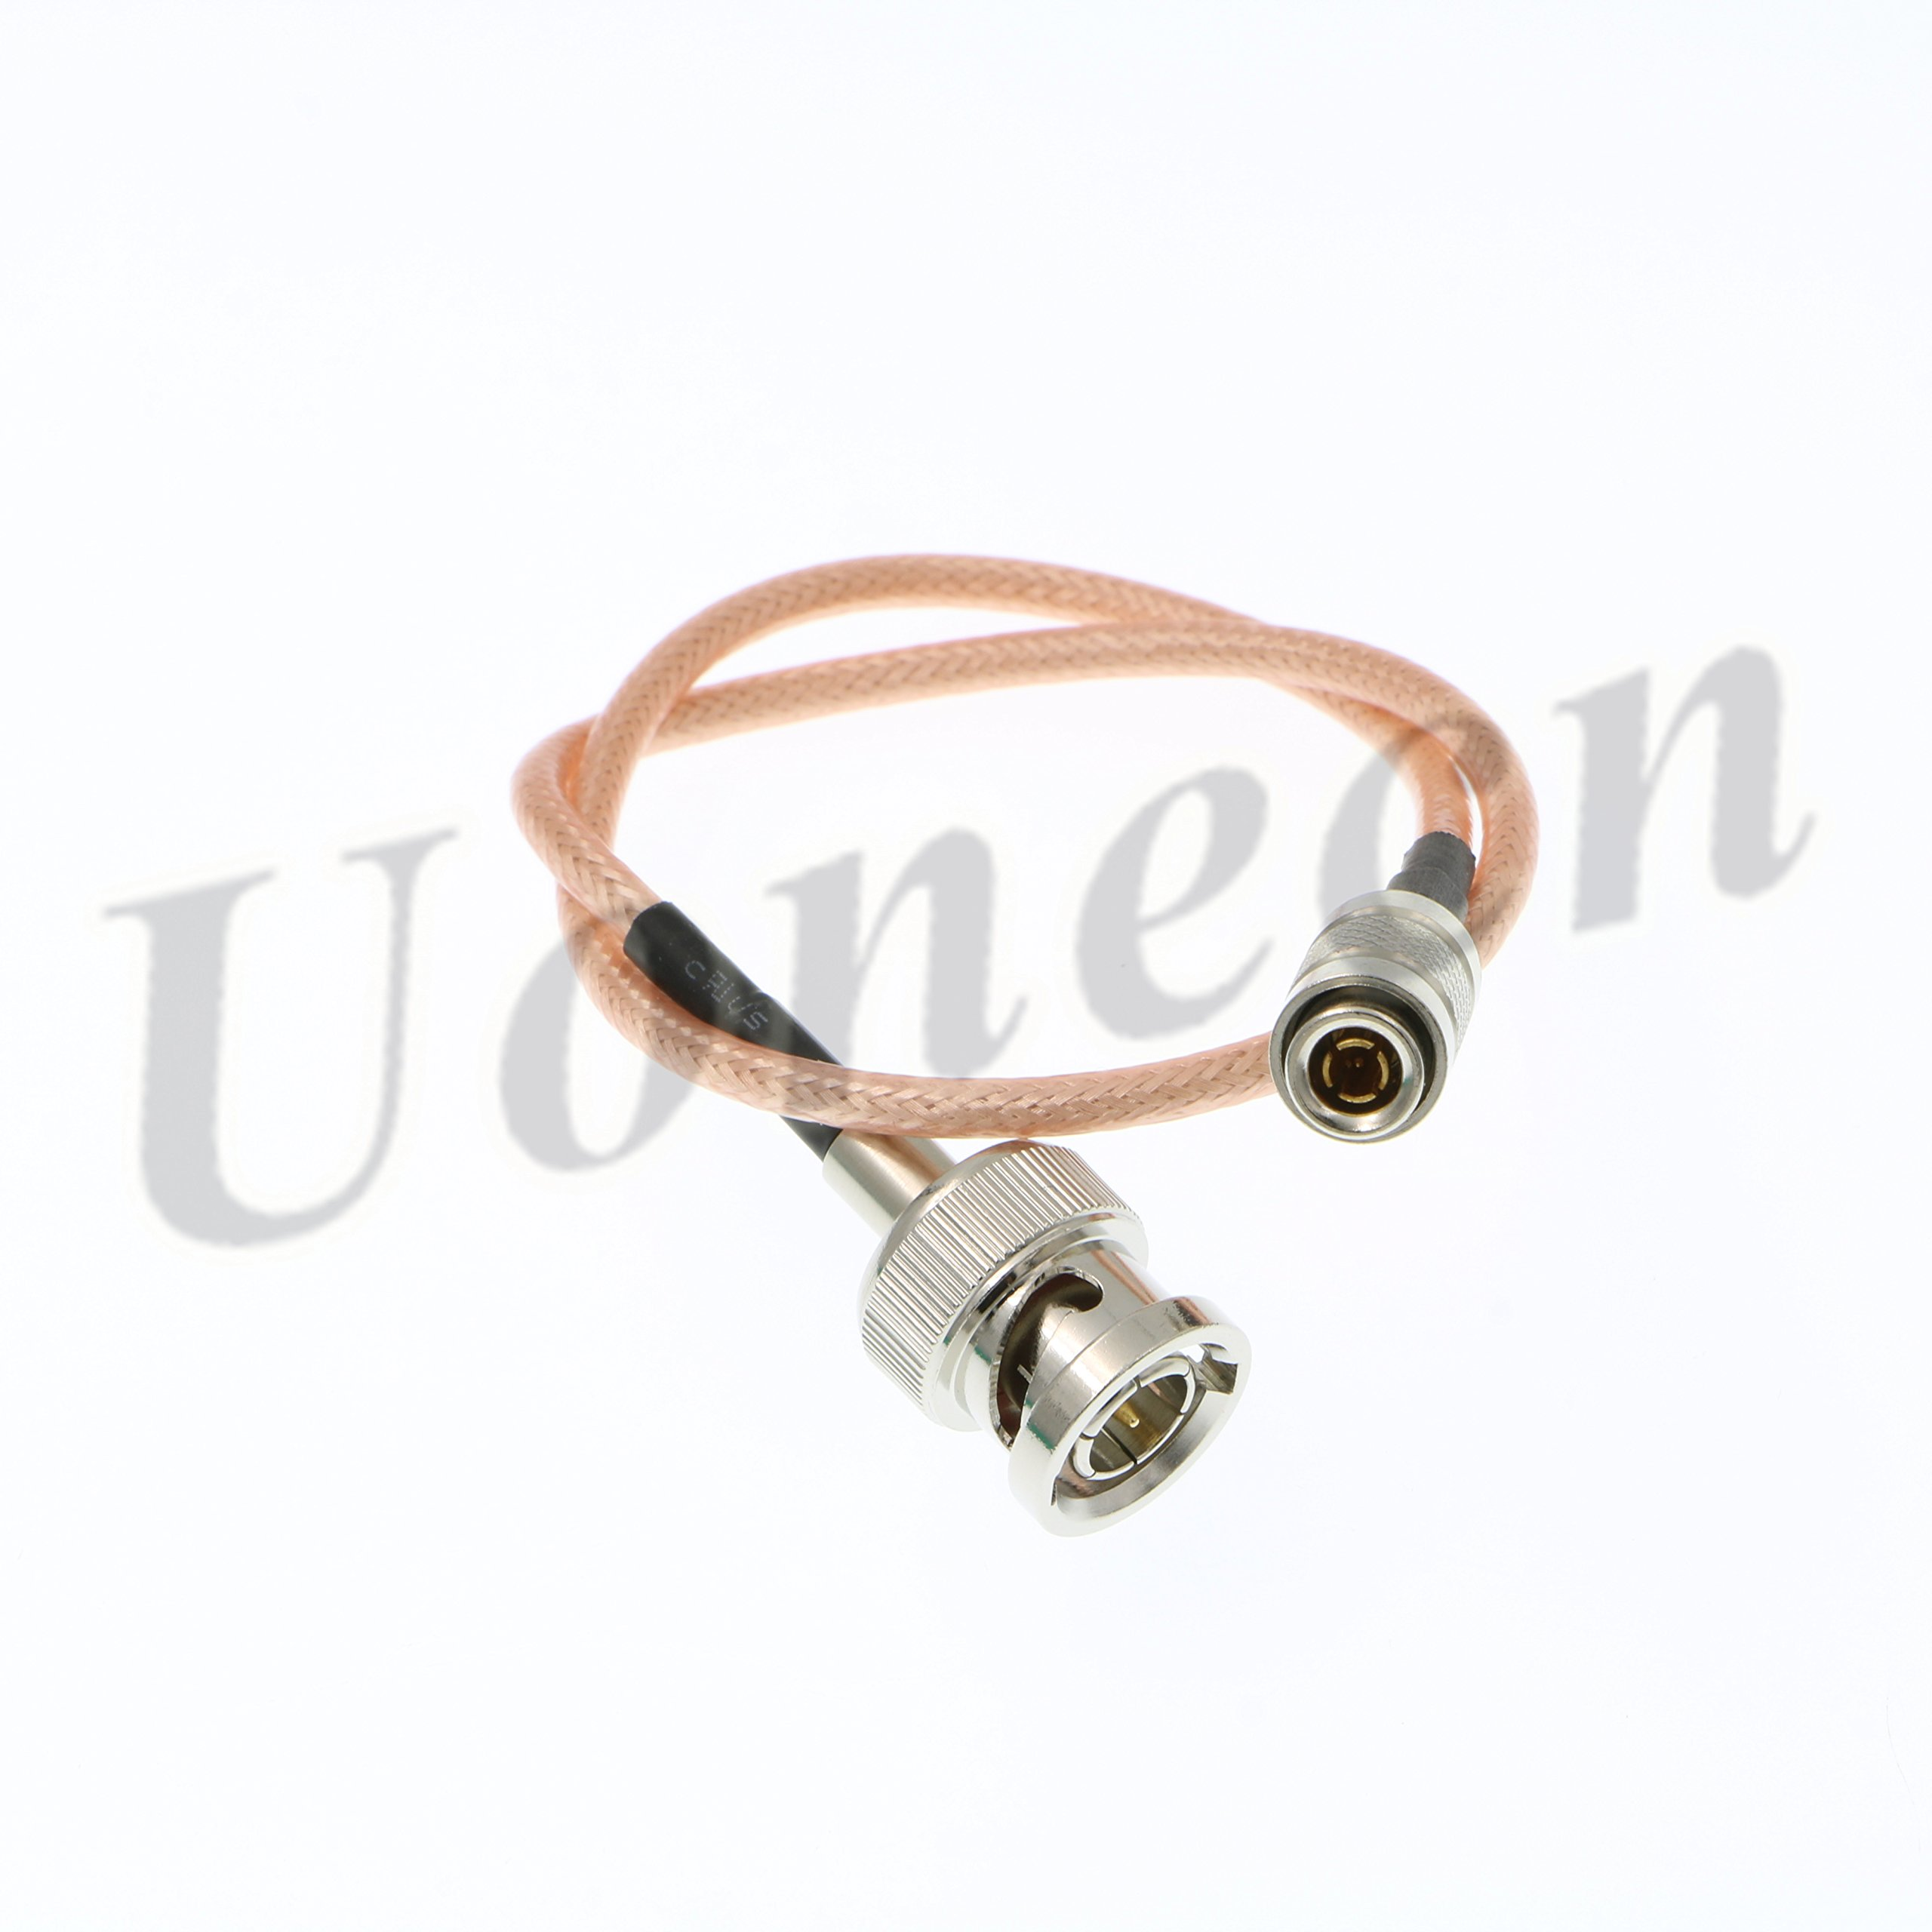 Uonecn DIN 1.0/2.3 Mini BNC to HD SDI BNC RG179 75ohm RF Coaxial Cable Video Cable for Blackmagic HyperDeck Shuttle